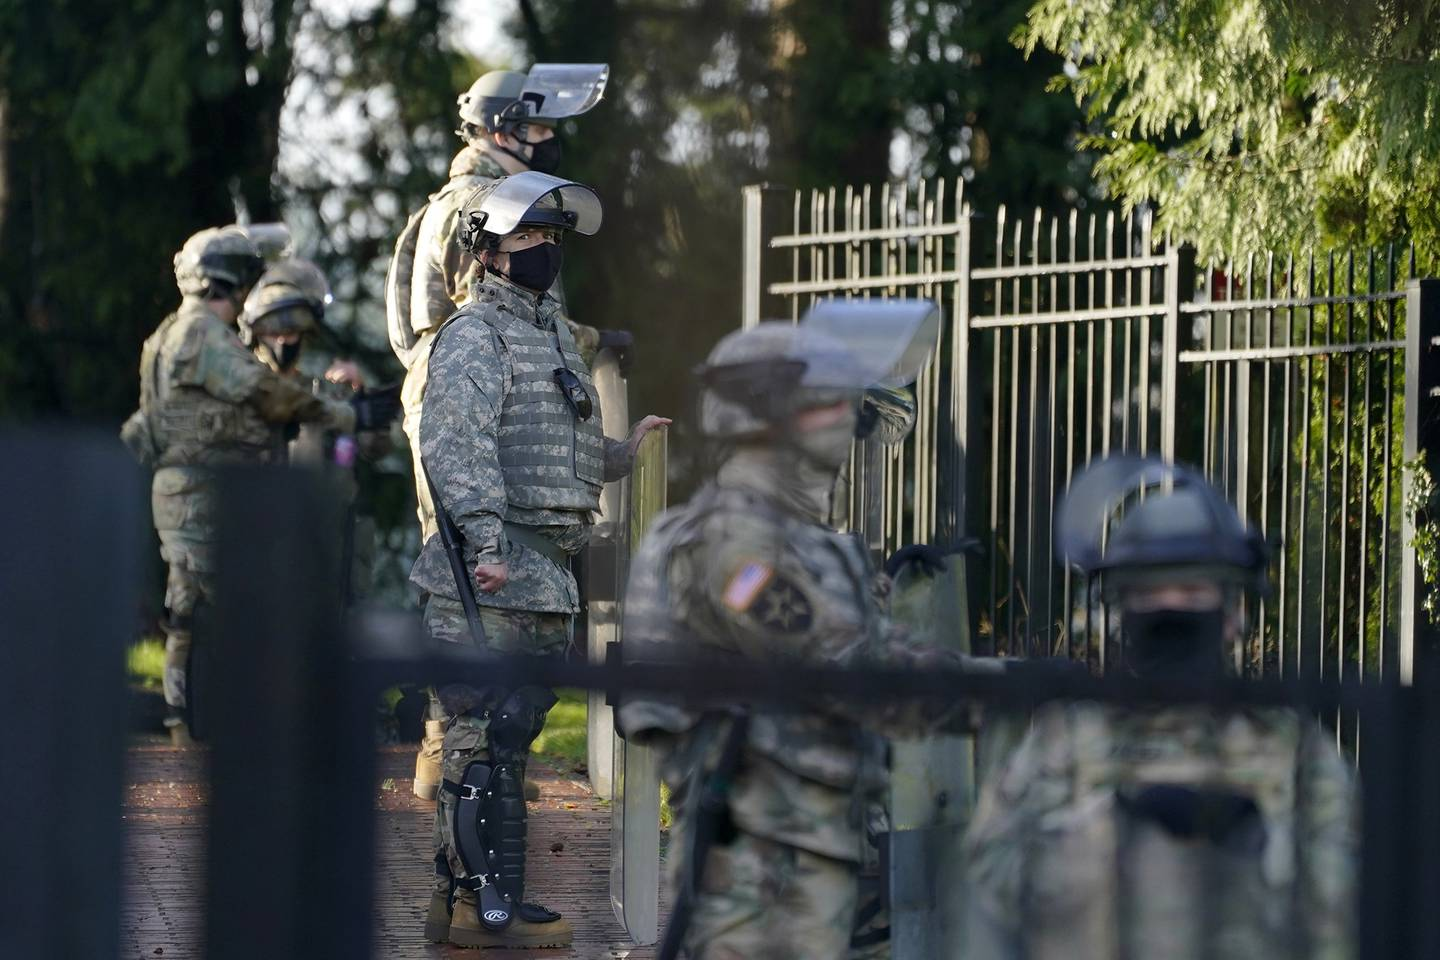 Members of the Washington National Guard stand along a perimeter fence at the Governor's Mansion, Sunday, Jan. 10, 2021, at the Capitol in Olympia, Wash.